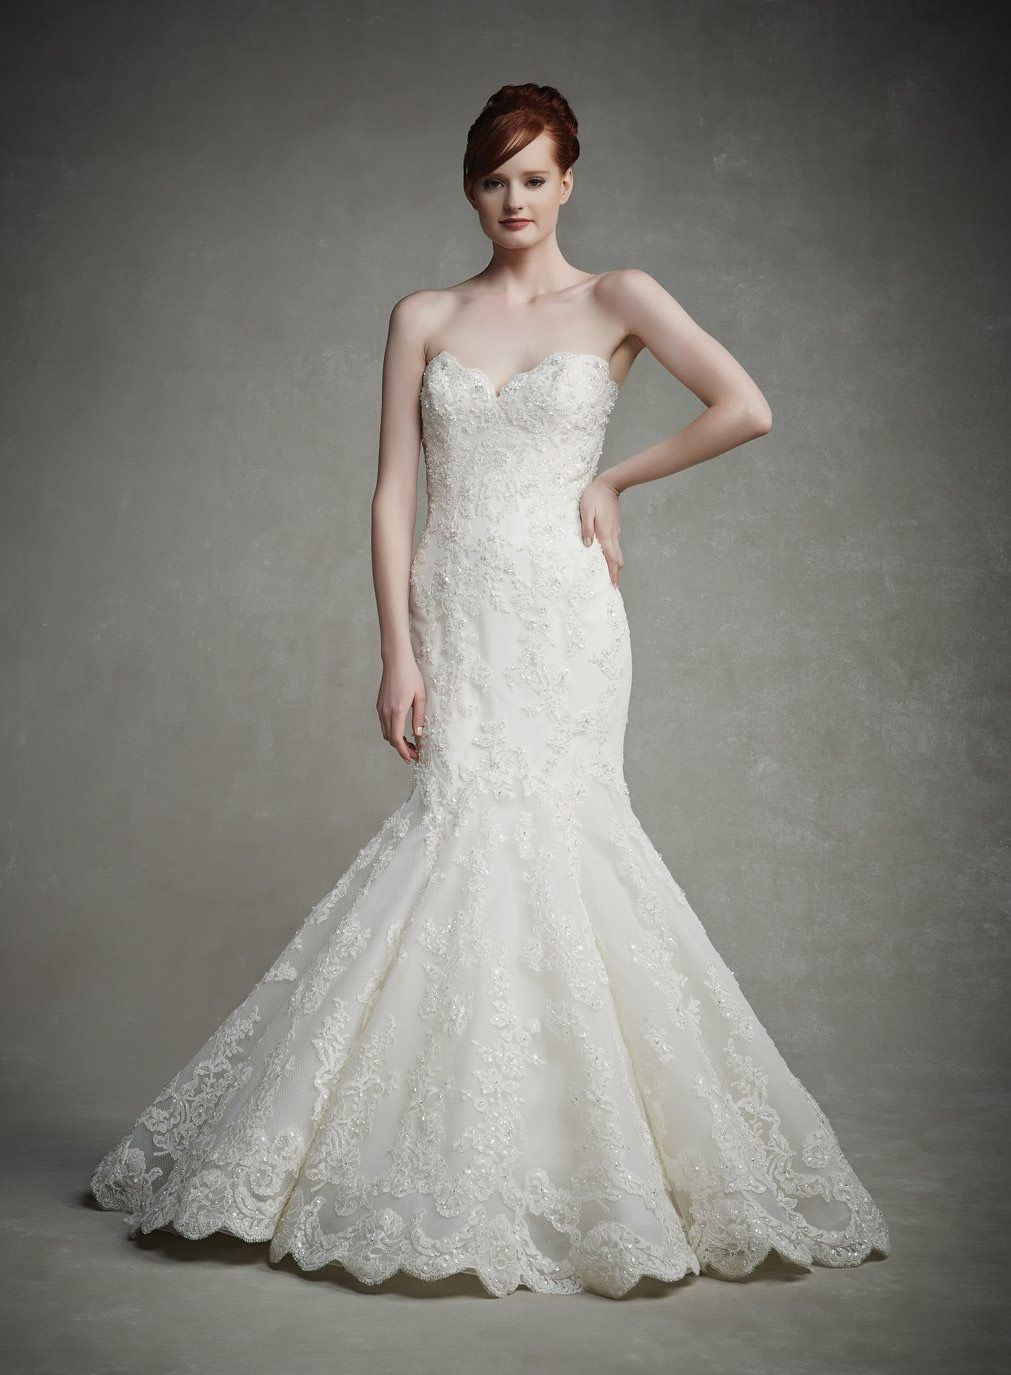 Best wedding dresses for 50 year olds  Pin by Joey Barragan on A Wedding dress  Pinterest  Wedding